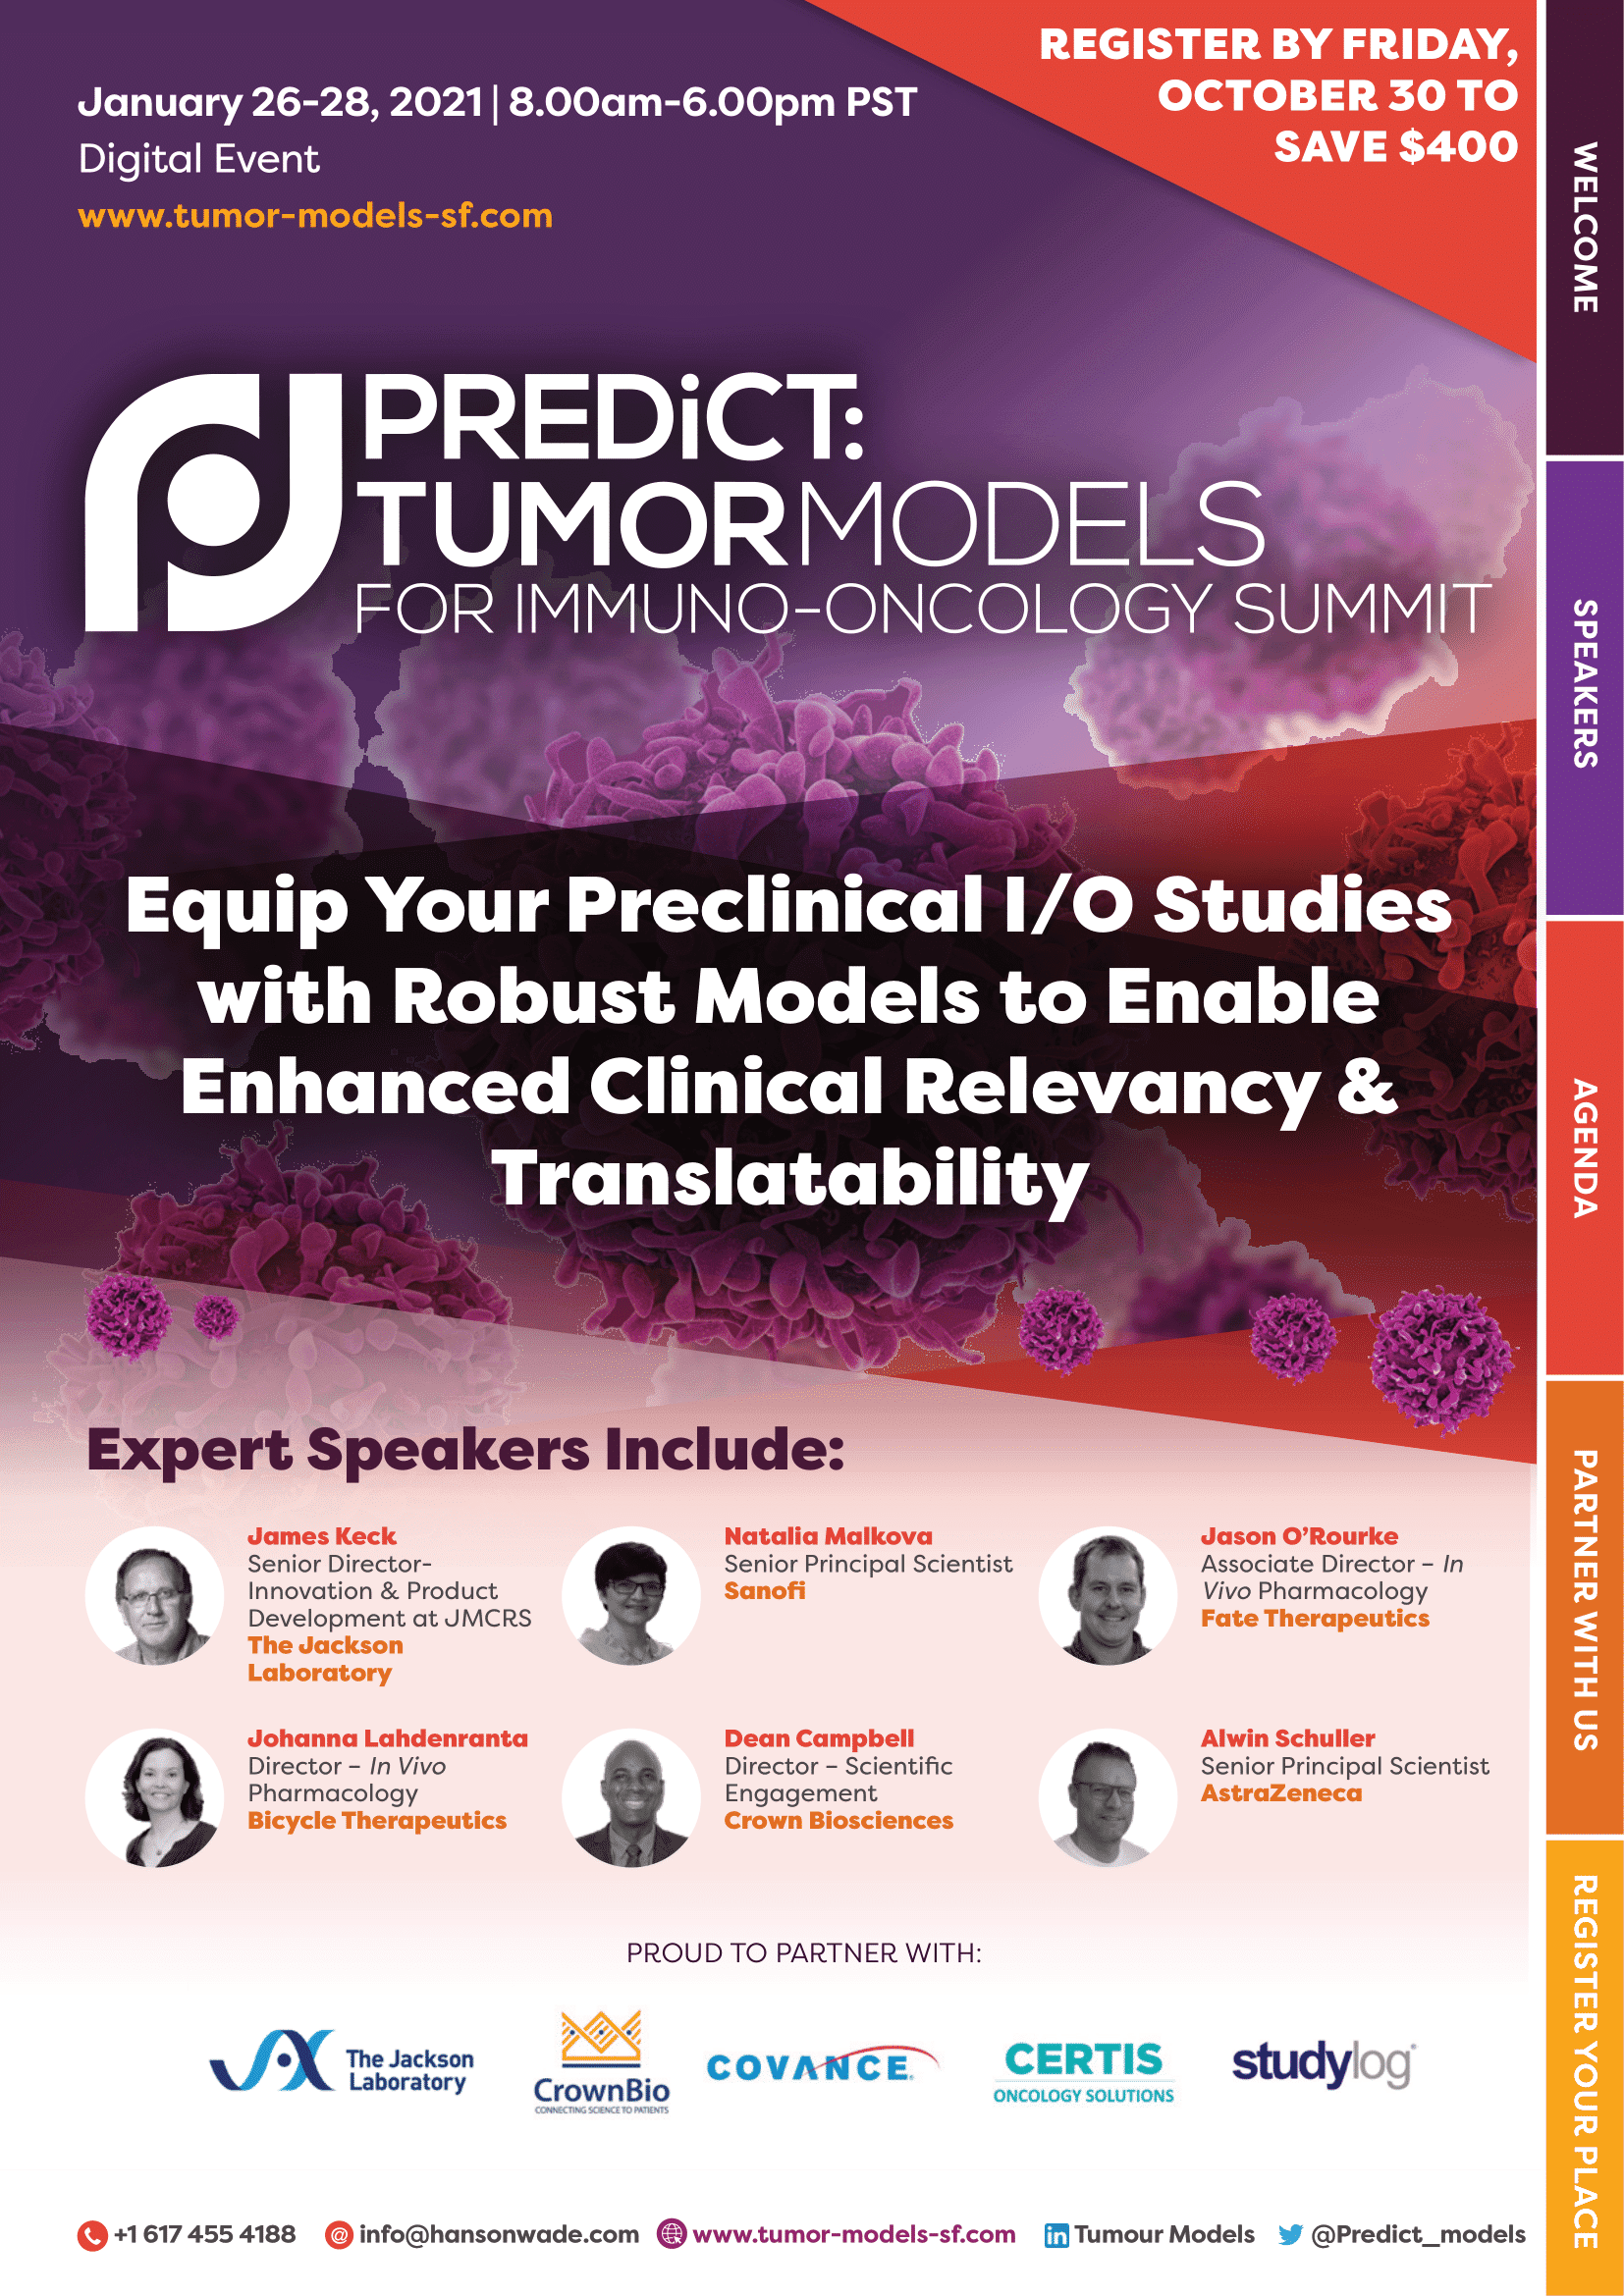 Official Program - Tumor Models San Francisco Summit 2021-01